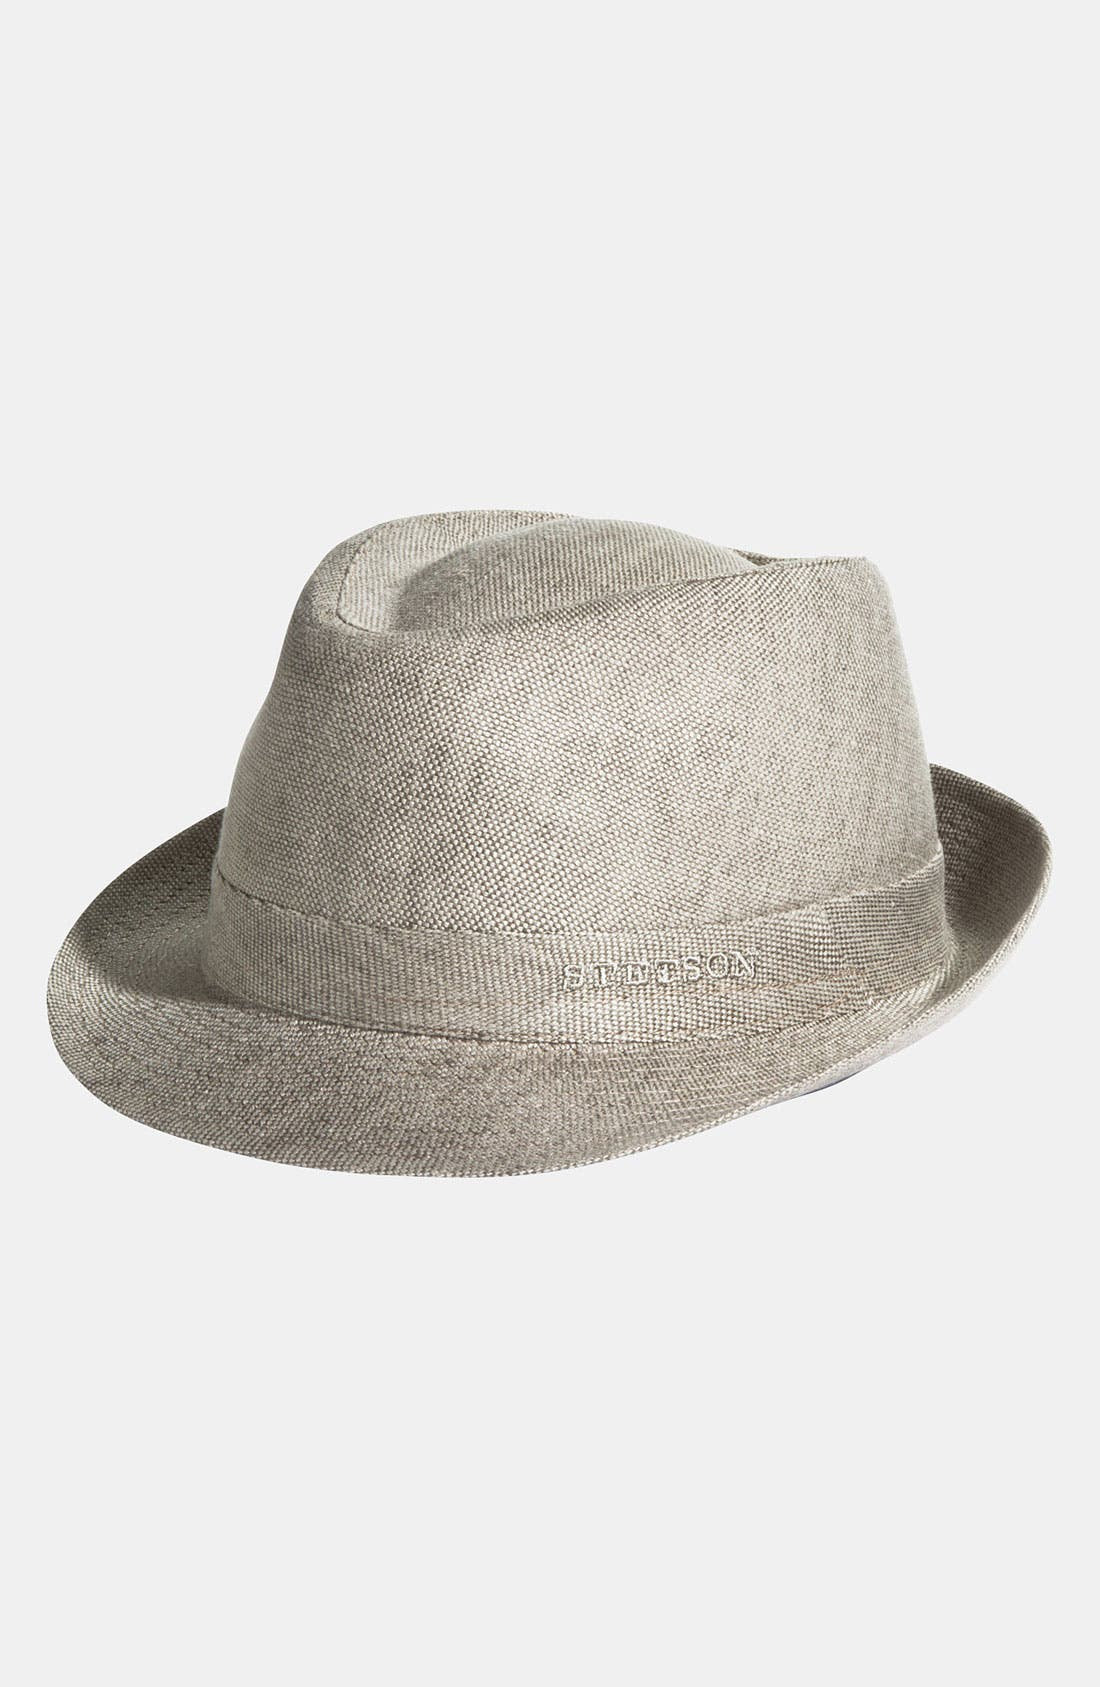 Alternate Image 1 Selected - Stetson 'Palmdale' Fedora